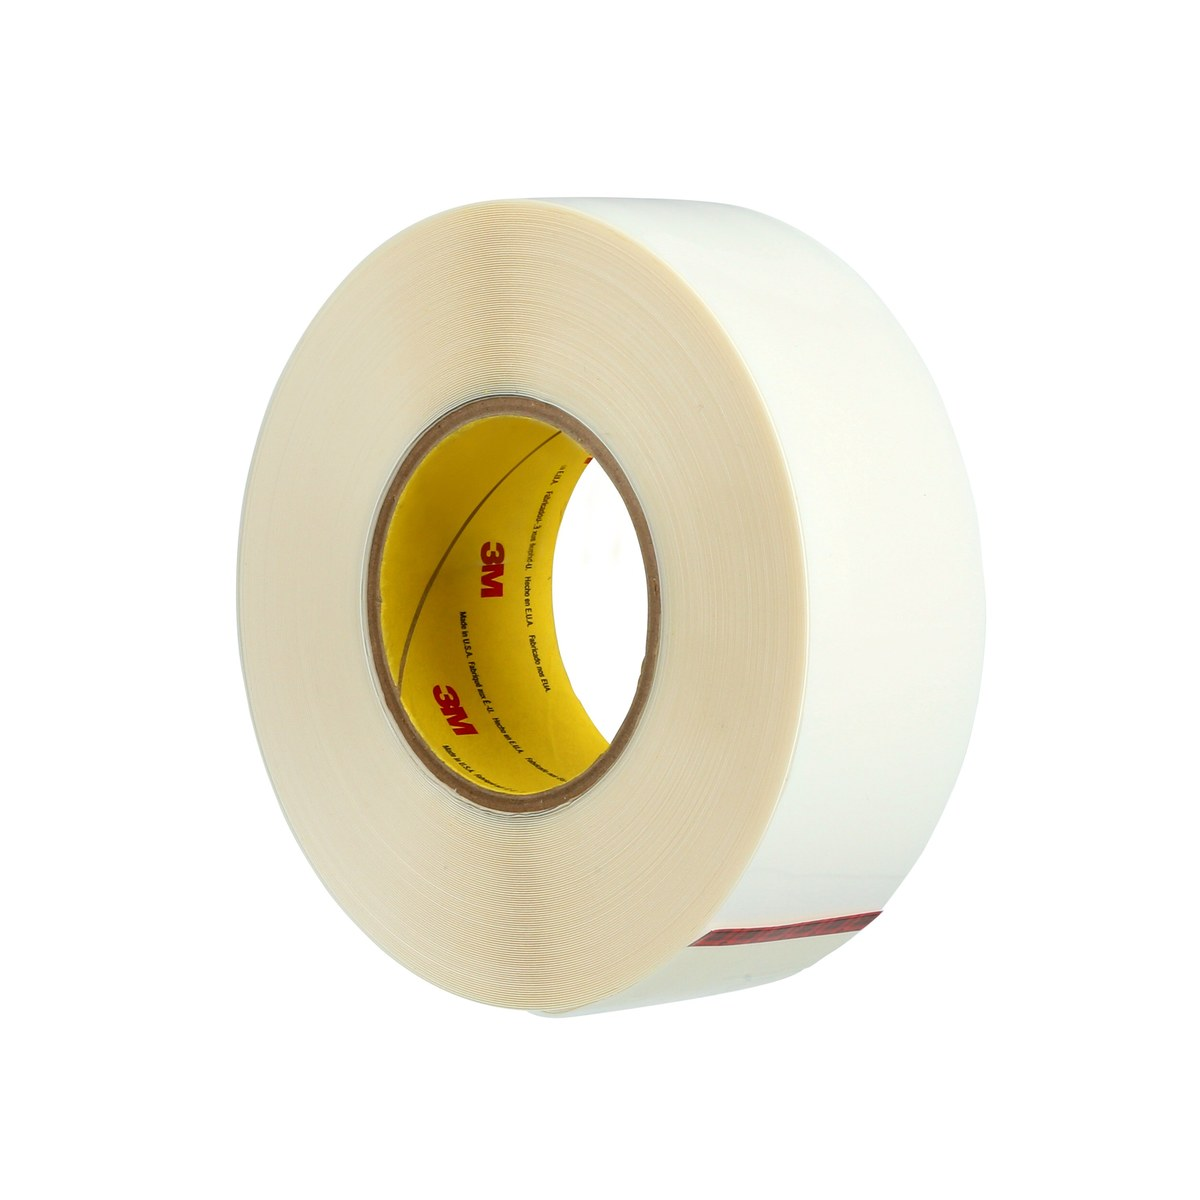 3m 8671 clear aerospace tape 2 in width x 36 yd length 0 014 in thick 24343 [ 1200 x 1200 Pixel ]